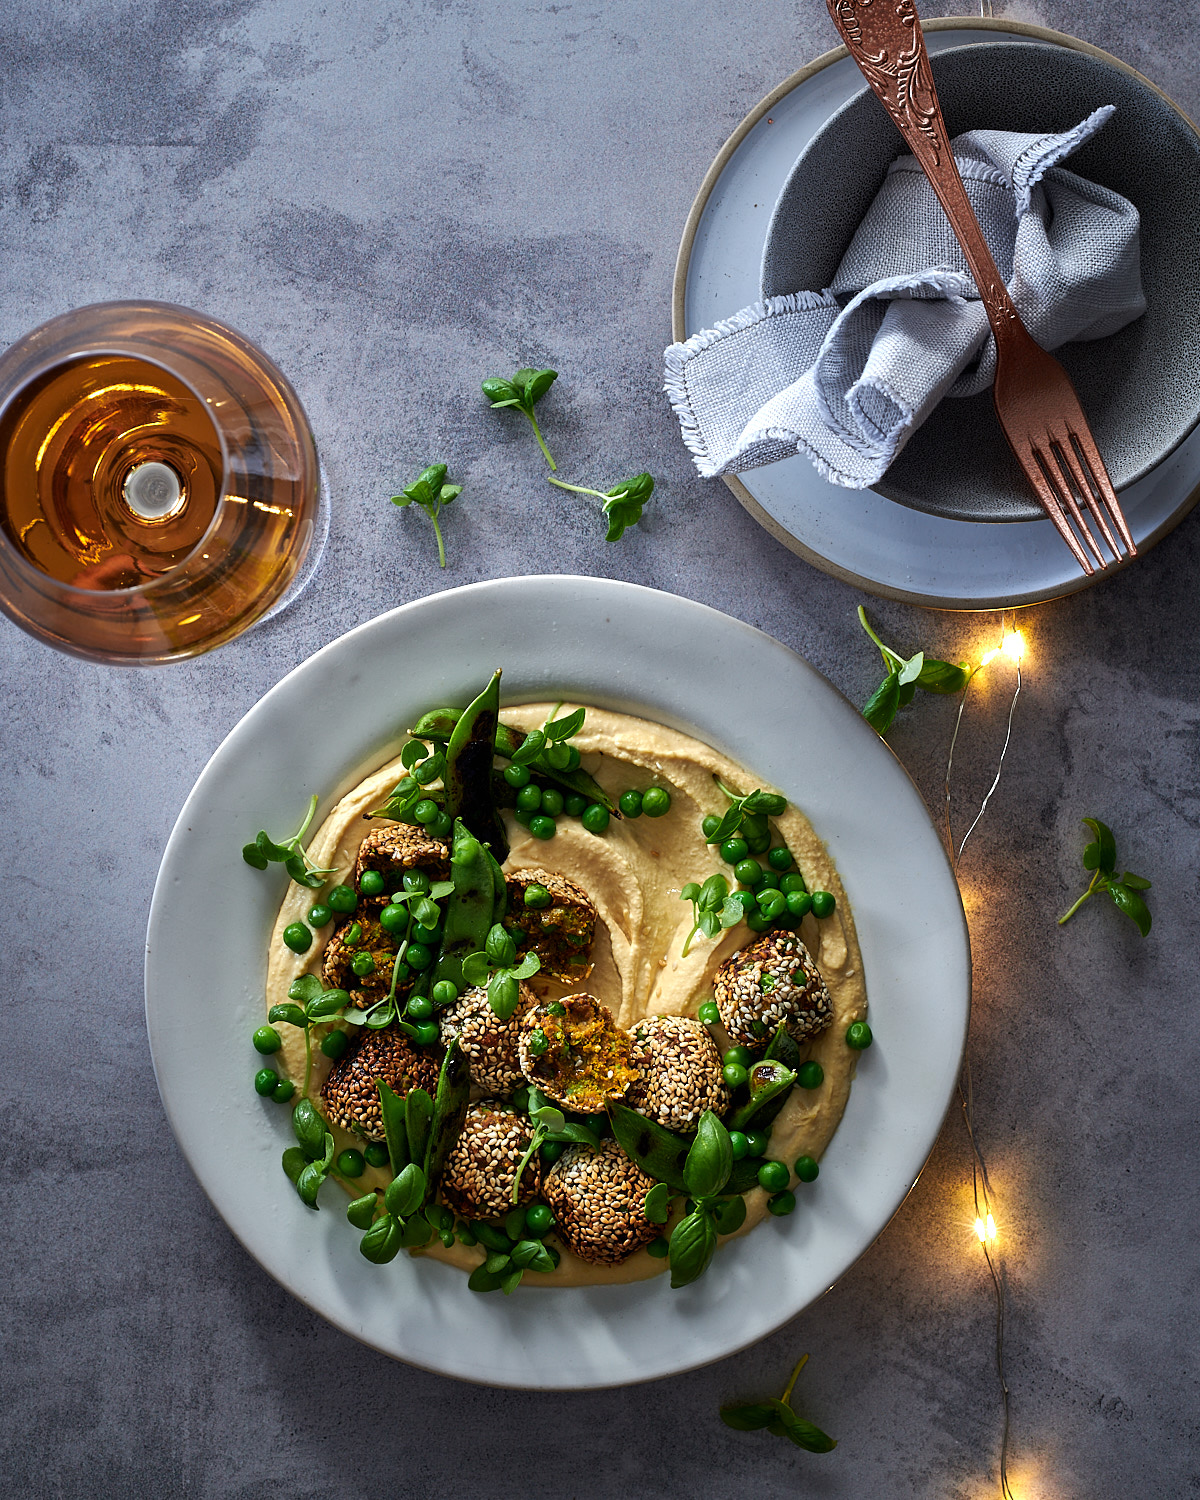 Pea falafels with charred sugar snap peas and hummus